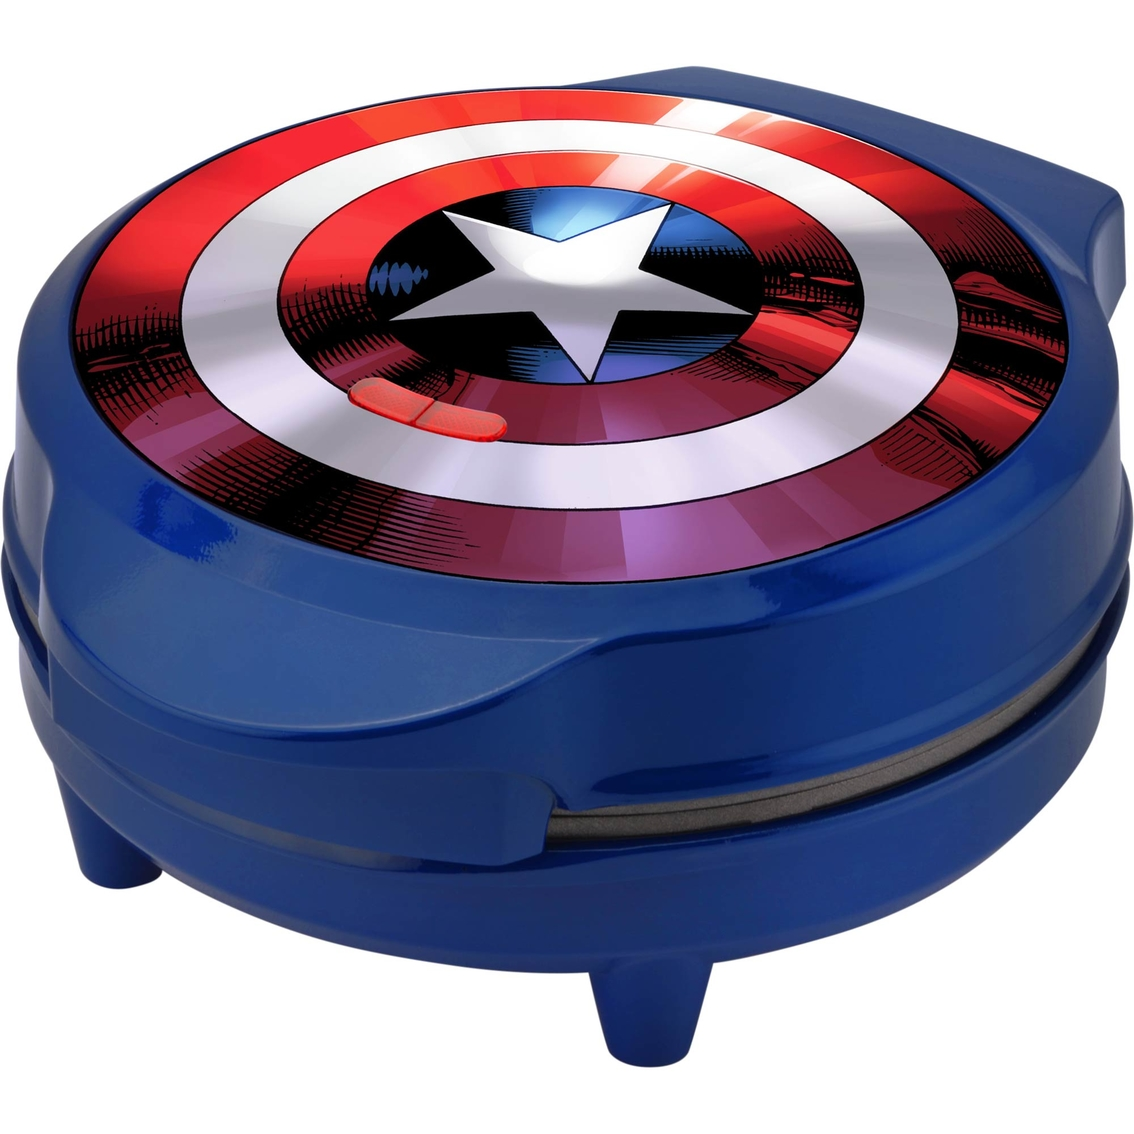 Wondrous Captain America Waffle Maker Waffle Egg Cookers Home Pdpeps Interior Chair Design Pdpepsorg